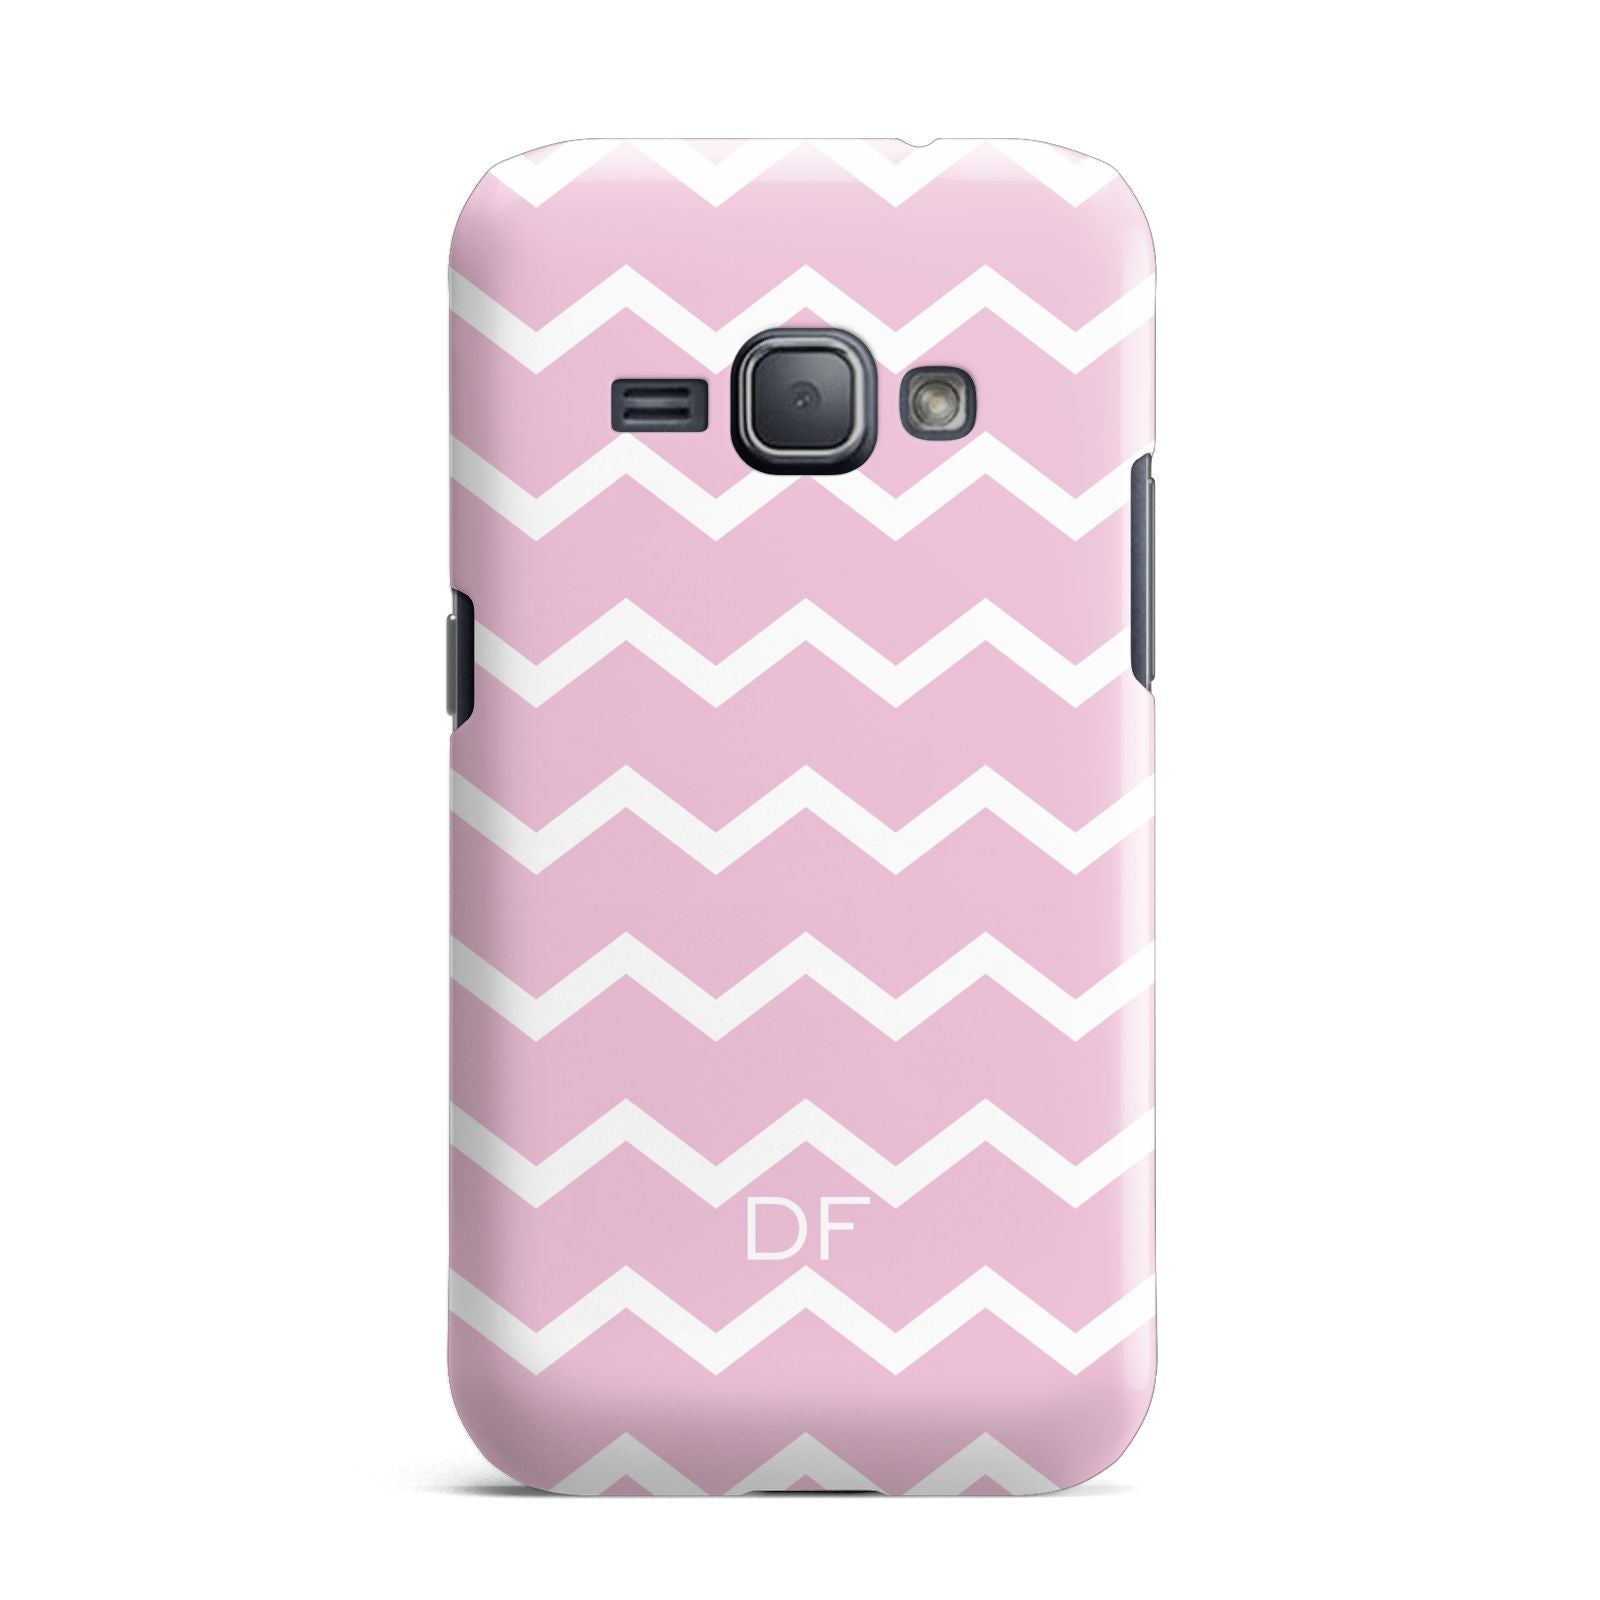 Personalised Chevron Pink Samsung Galaxy J1 2016 Case